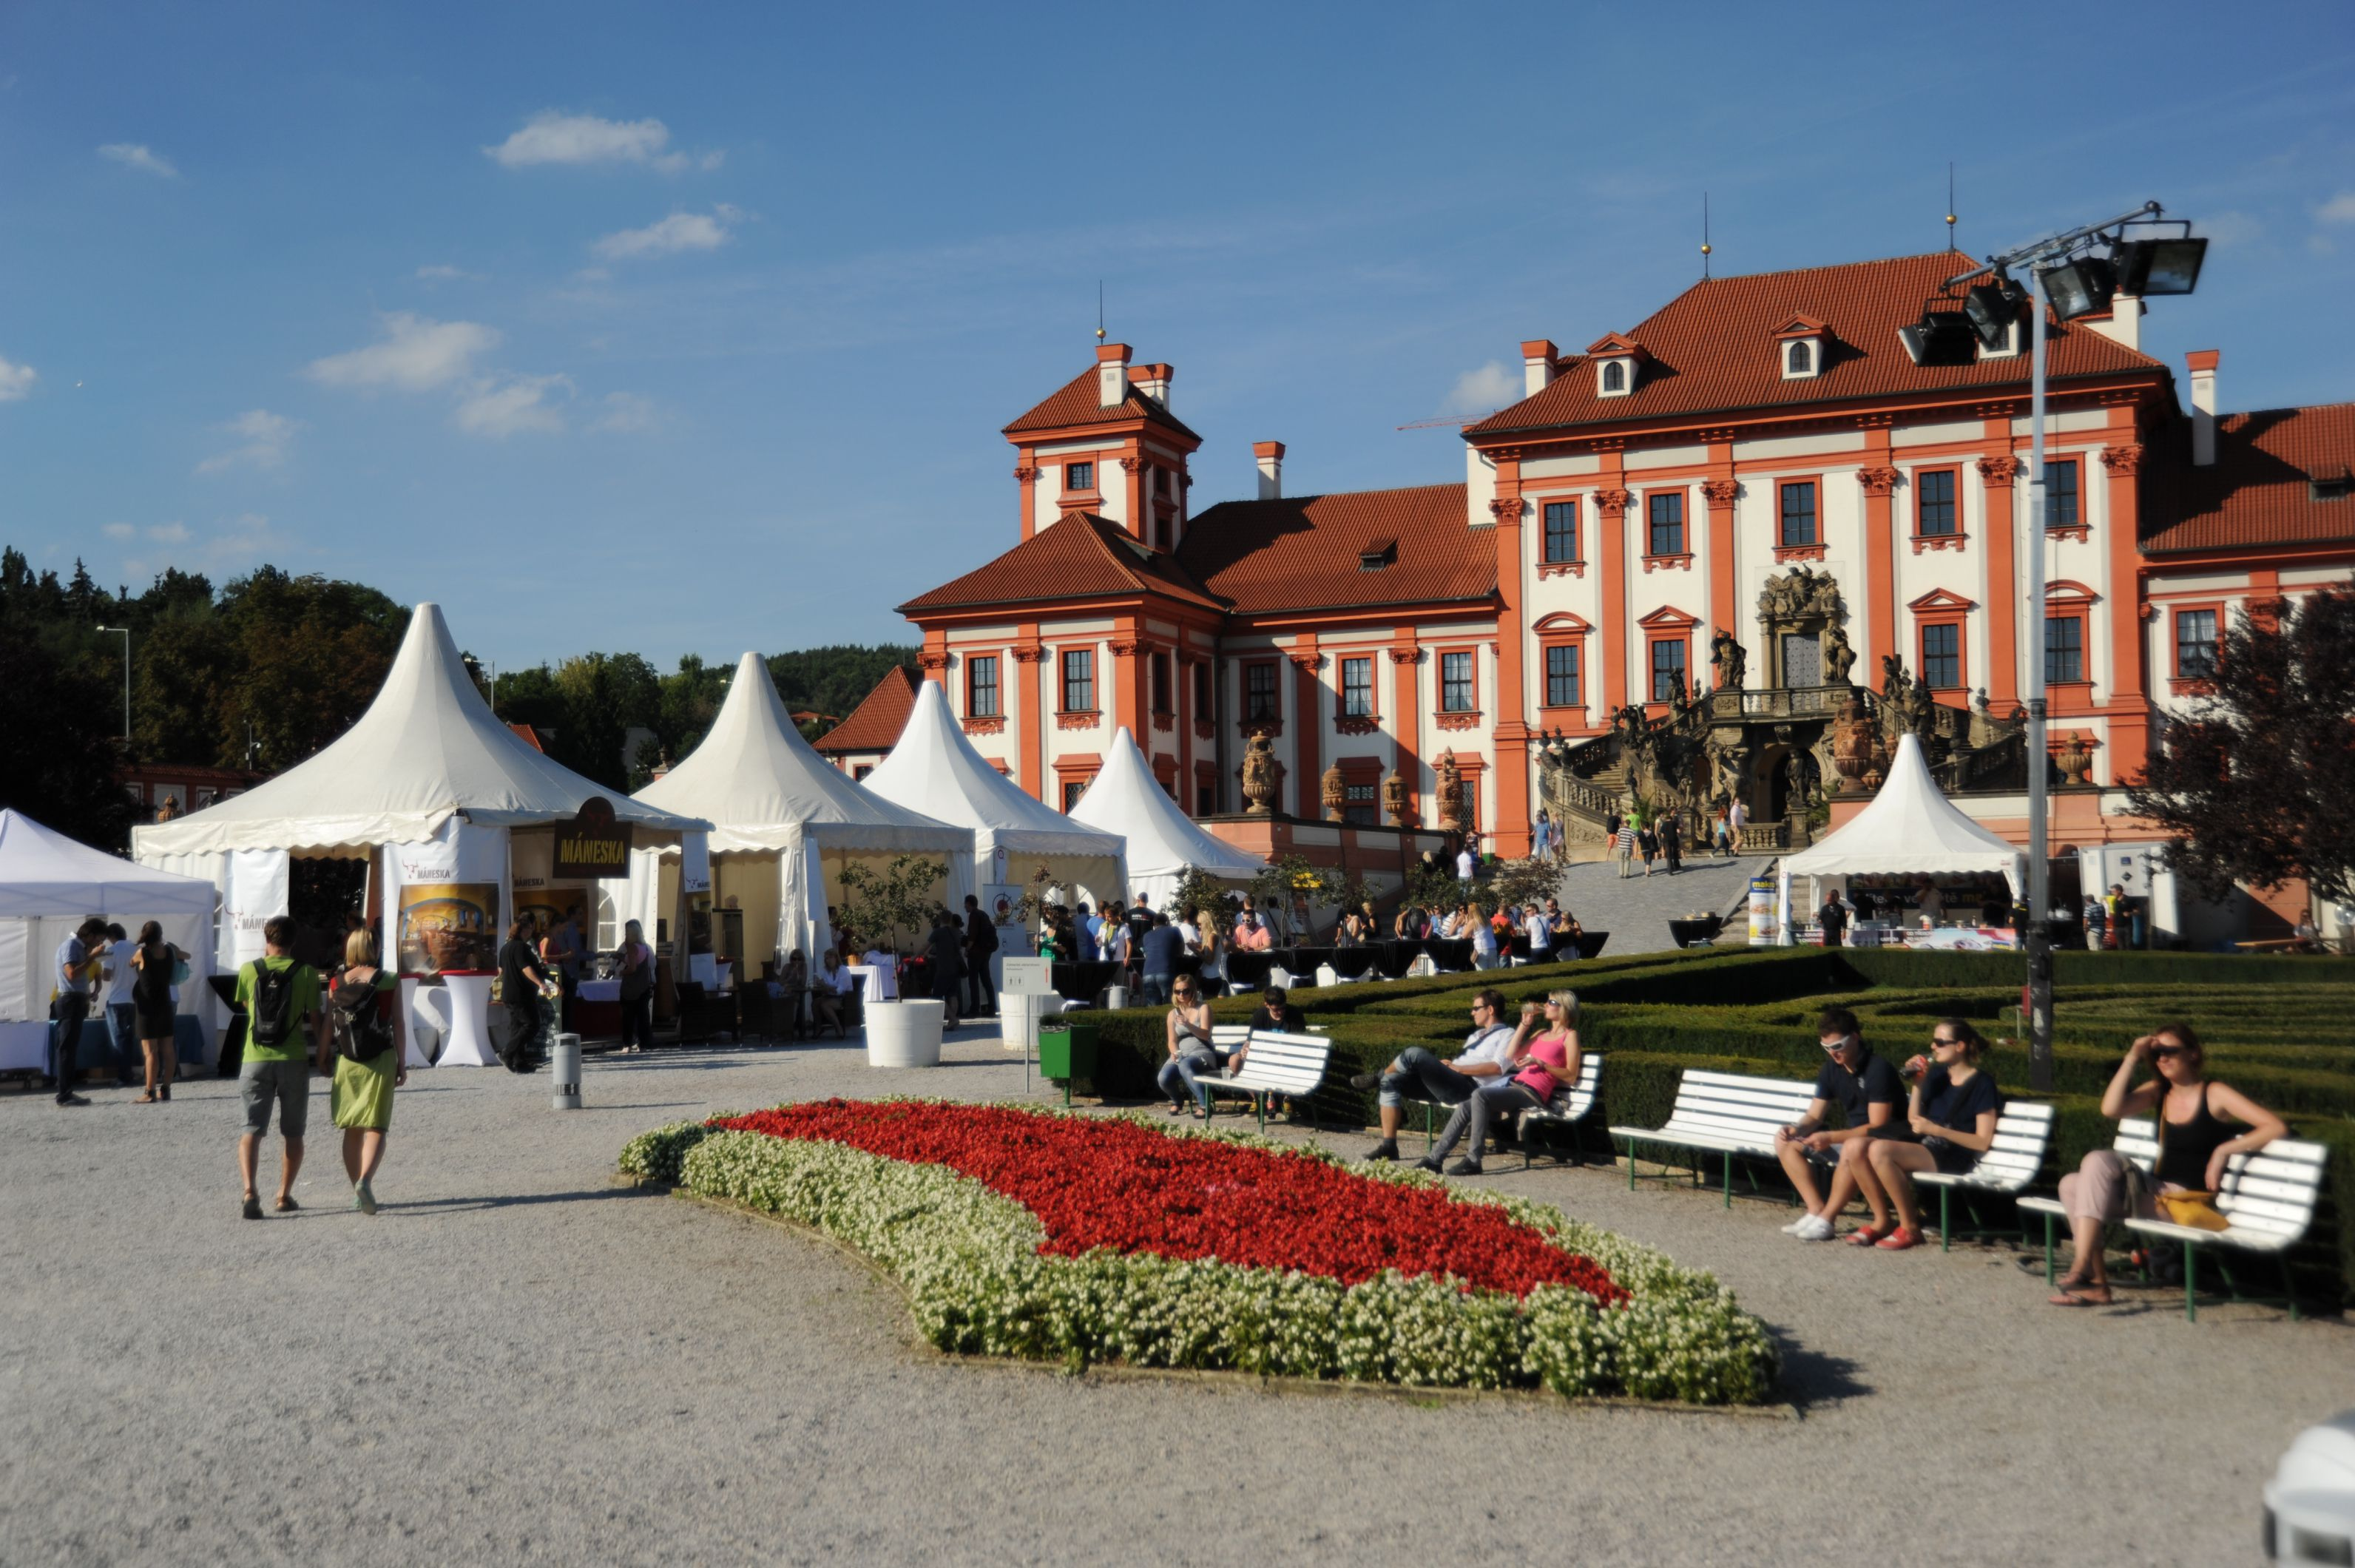 Enjoy a festival of food and drink in the lovely gardens of the Baroque château Troja.